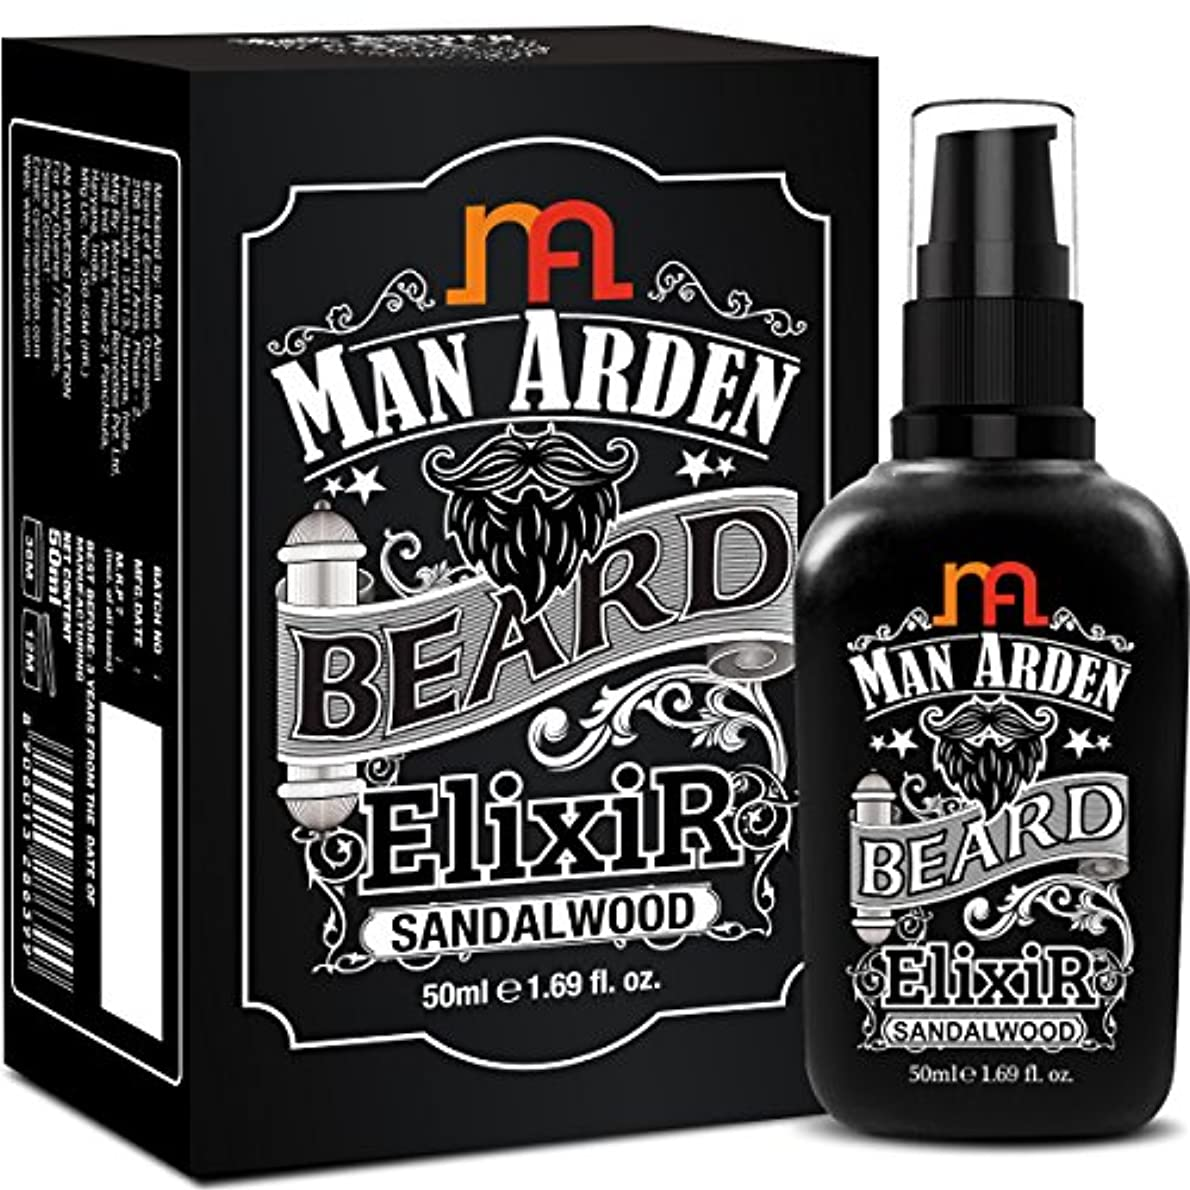 窒素メディカル歌詞Man Arden Beard Elixir Oil 50ml (Sandalwood) - 7 Oils Blend For Beard Repair, Growth & Nourishment8906013286399